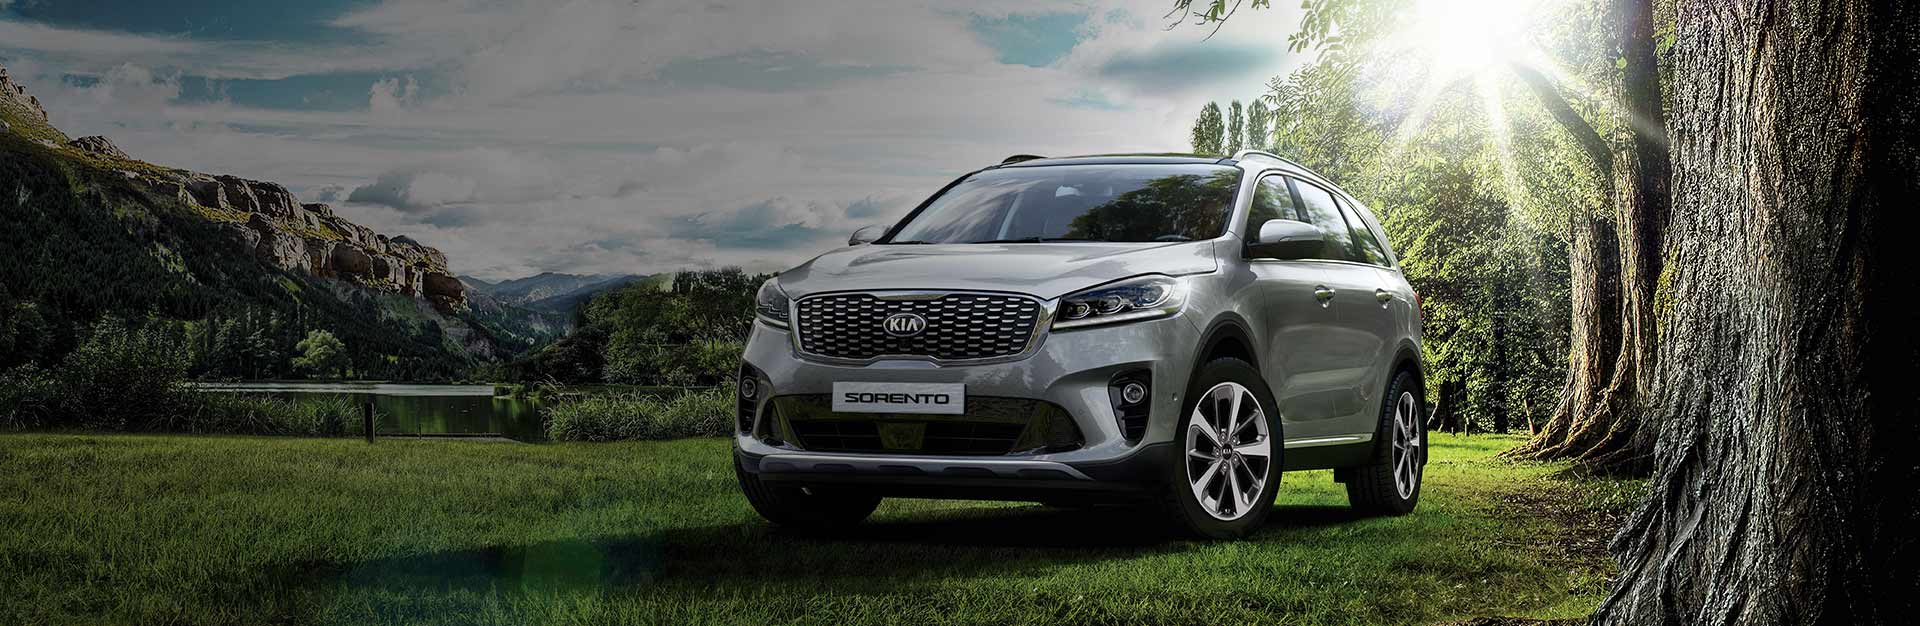 All-new Sorento adds more notable wins to its trophy cabinet video-banner